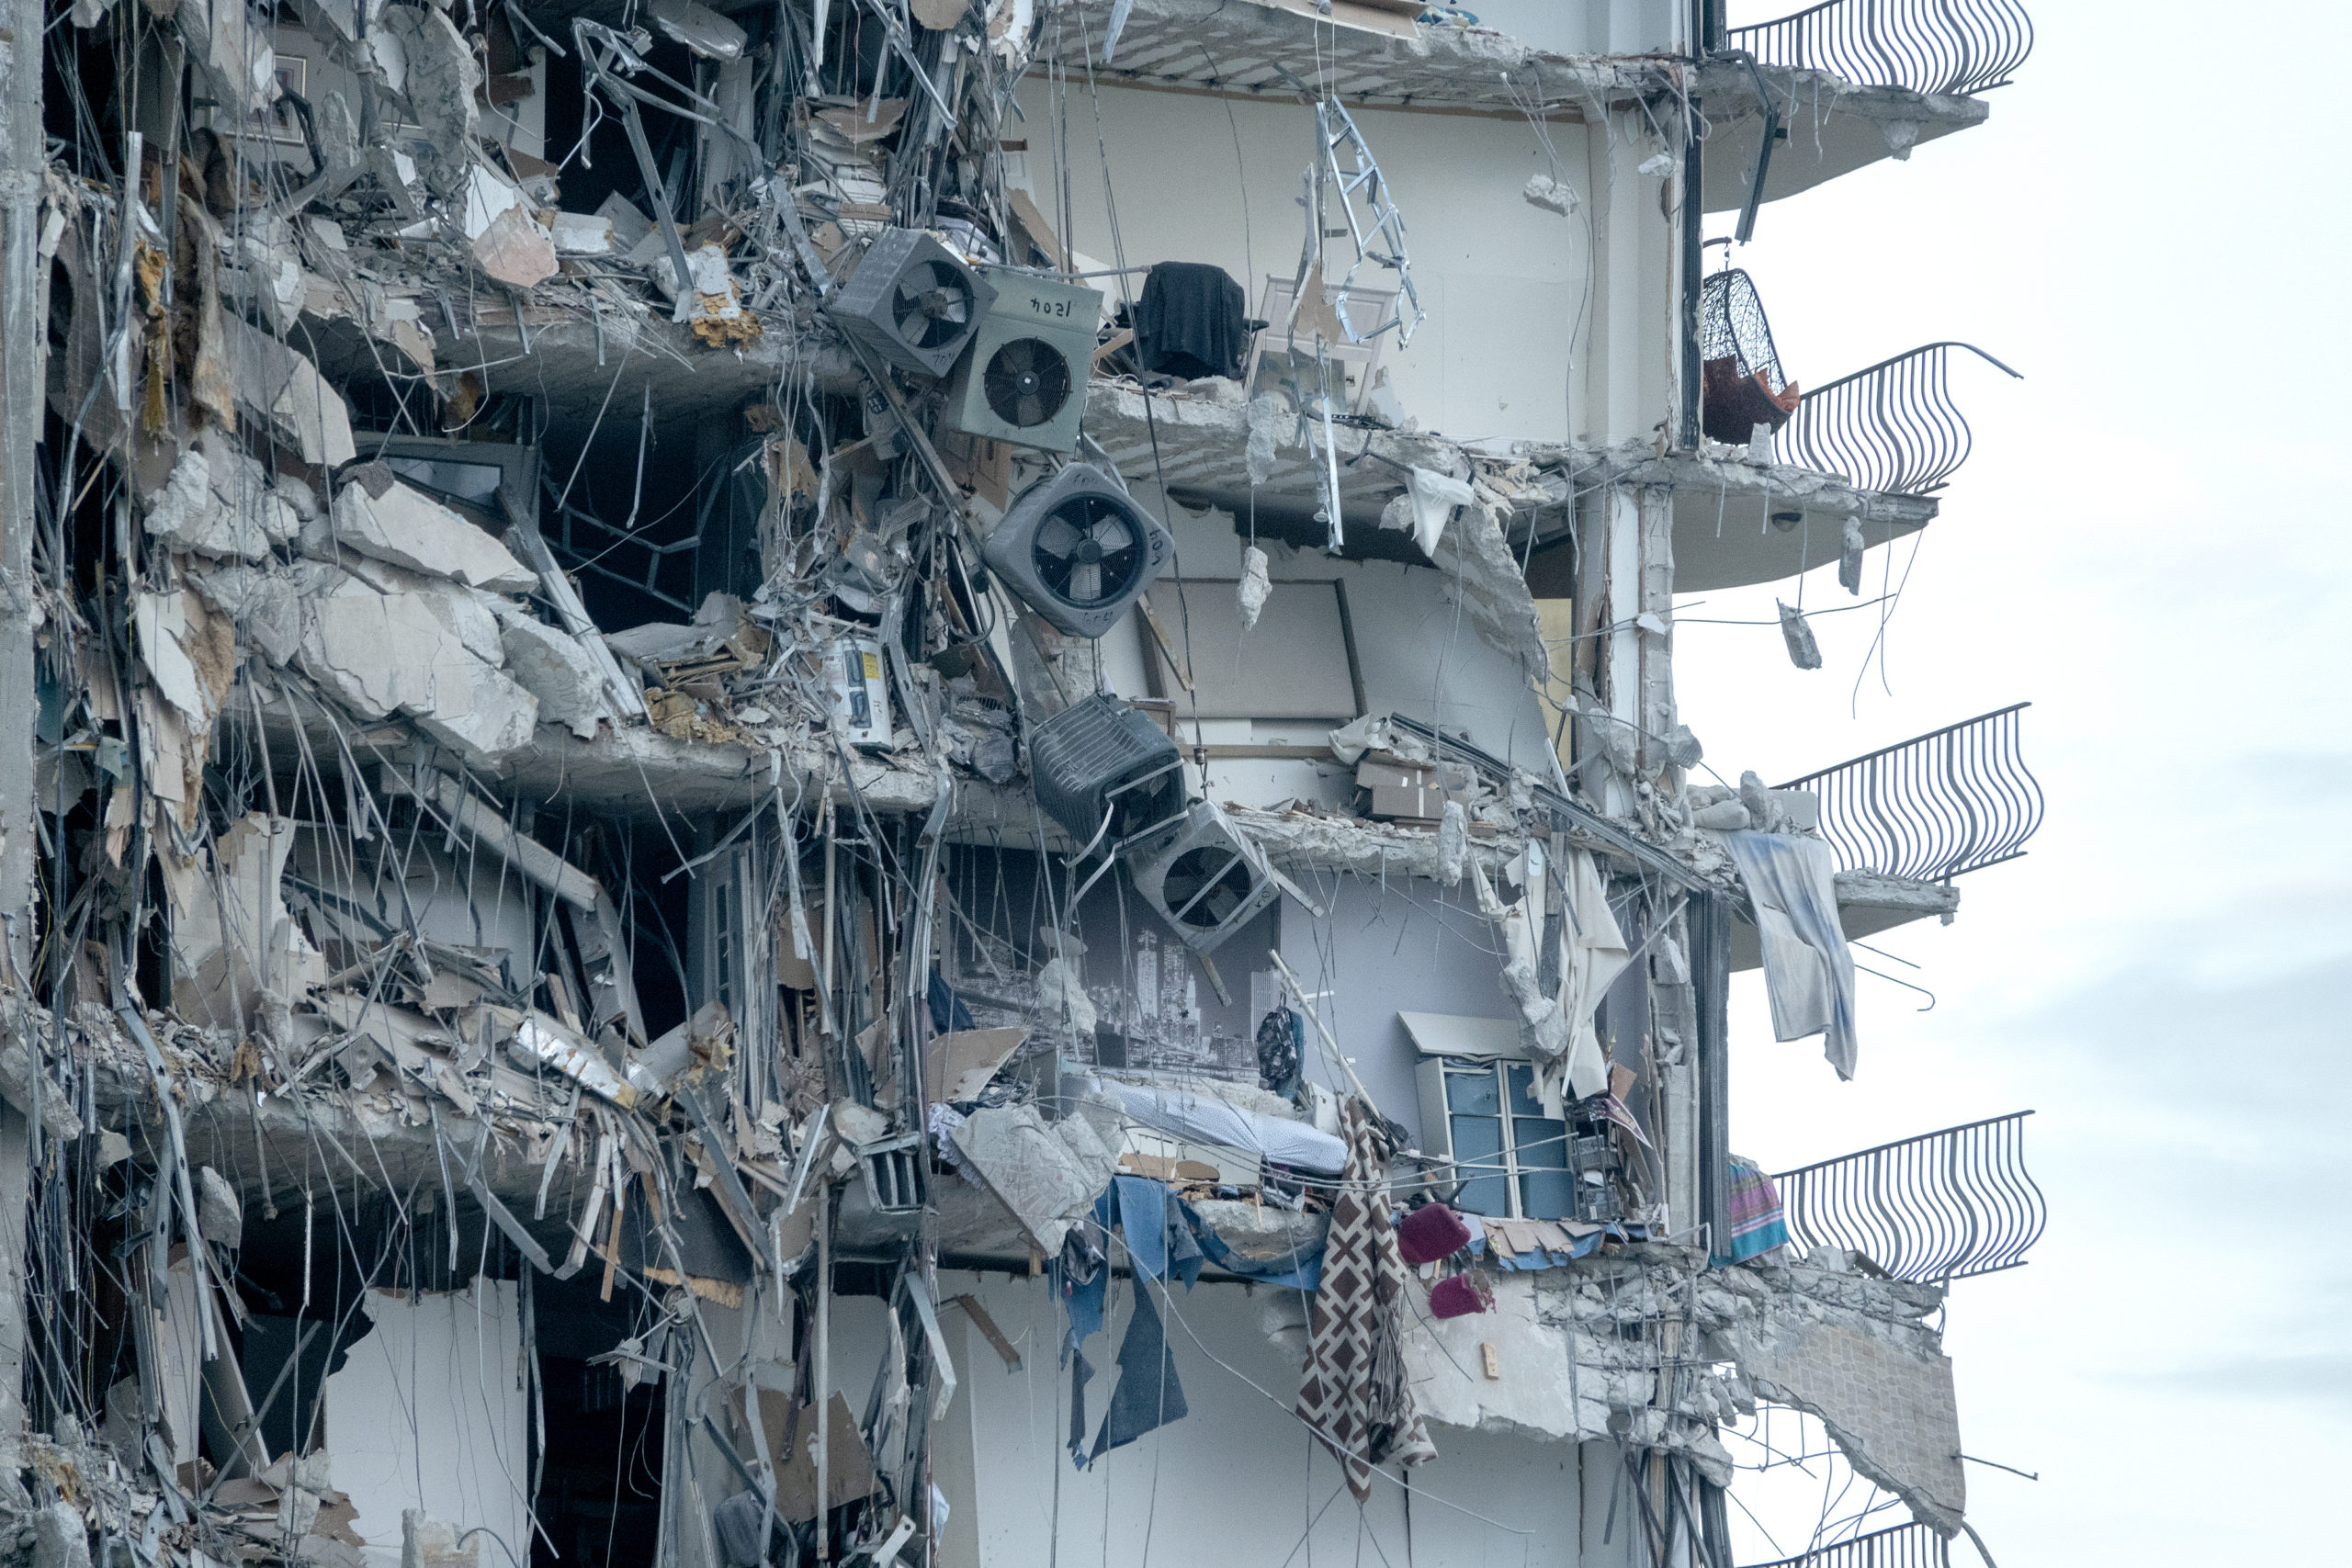 World: Nearly 100 people missing as oceanfront Miami-area building collapses